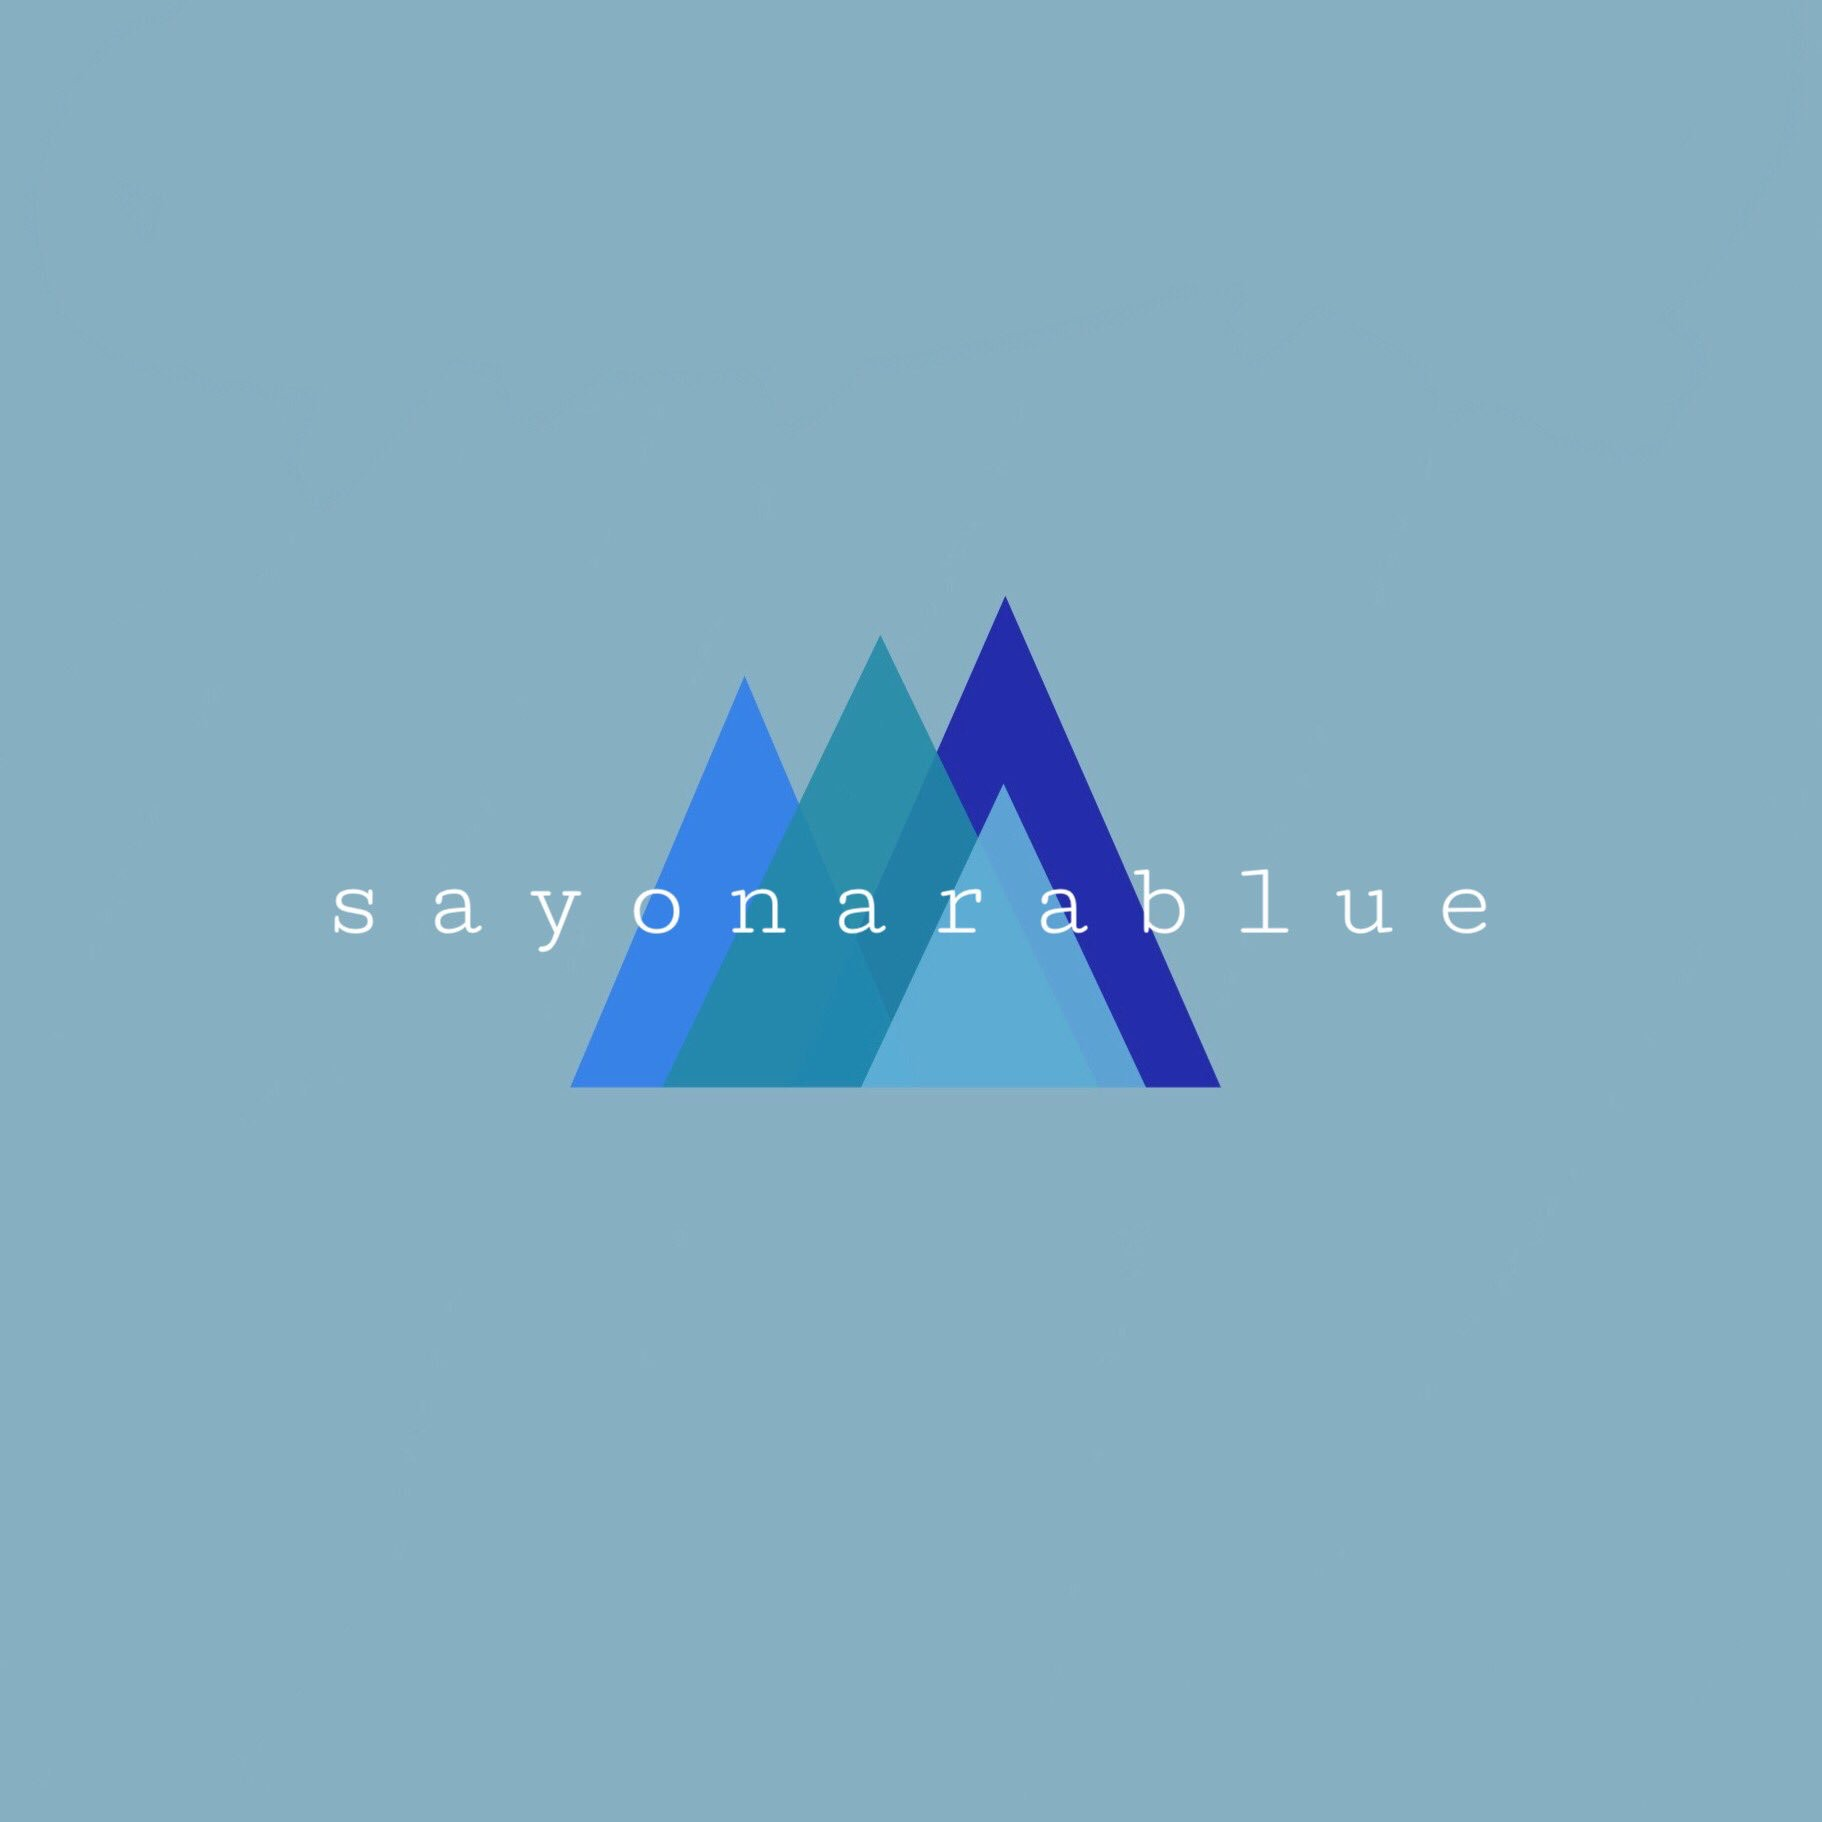 sayonarablue – frostbite ep [FLAC + MP3 320 / CD] [2018.04.04]